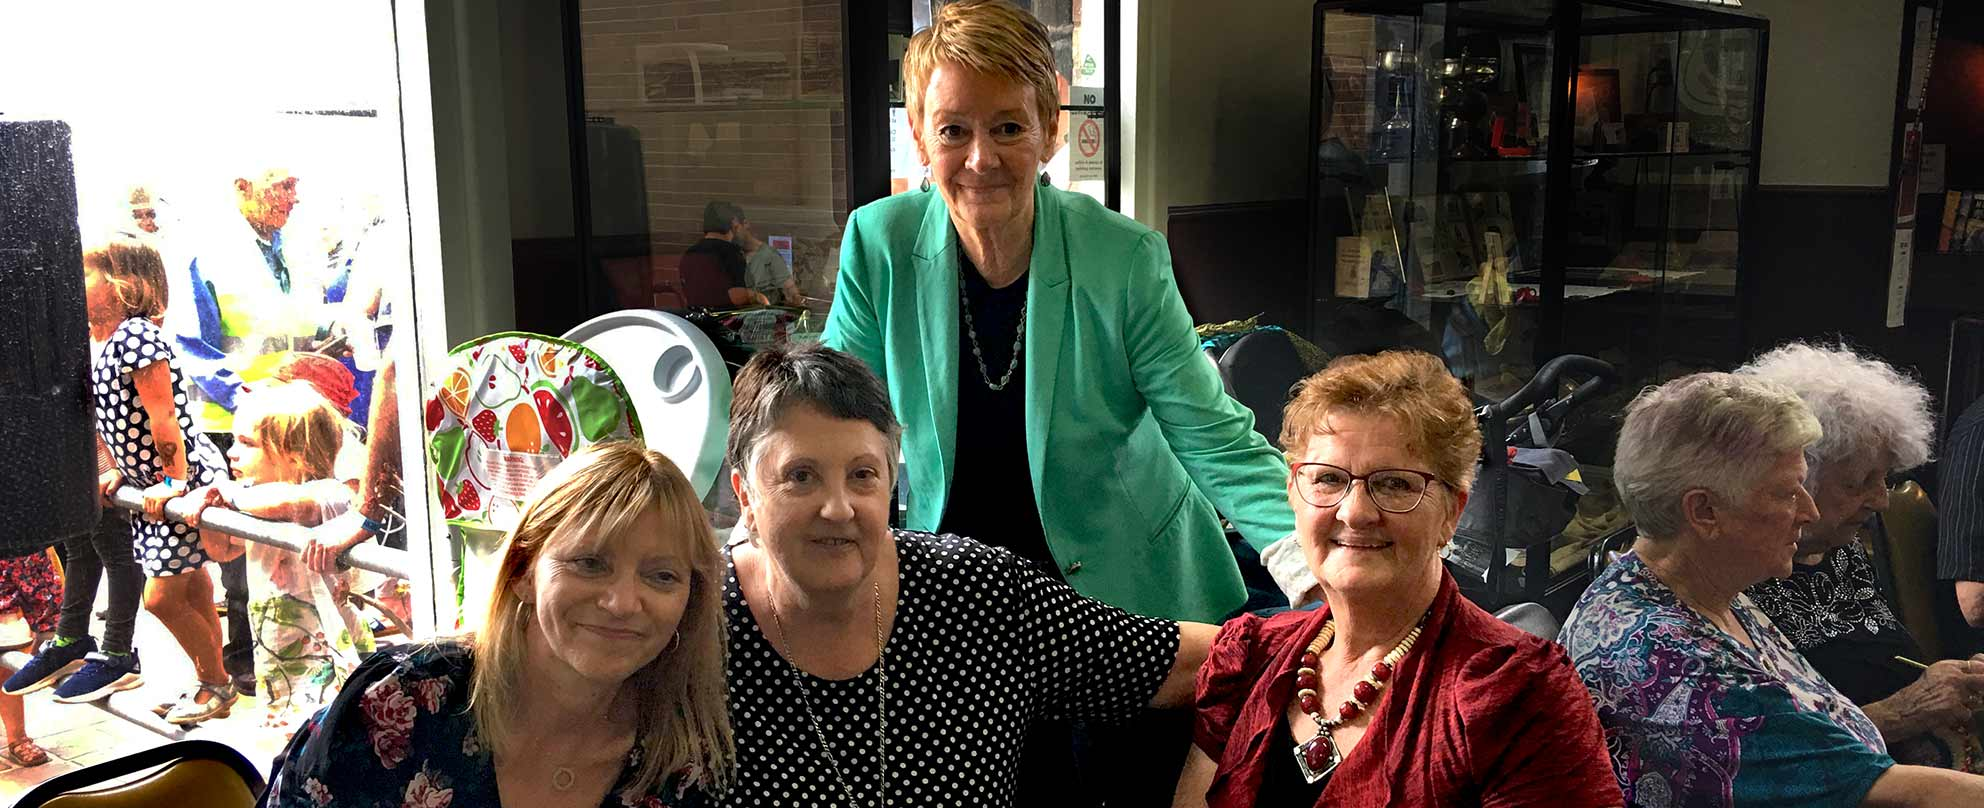 Photo of four smiling middle-aged women in a pub environment, three sitting at a table and one standing behind them.